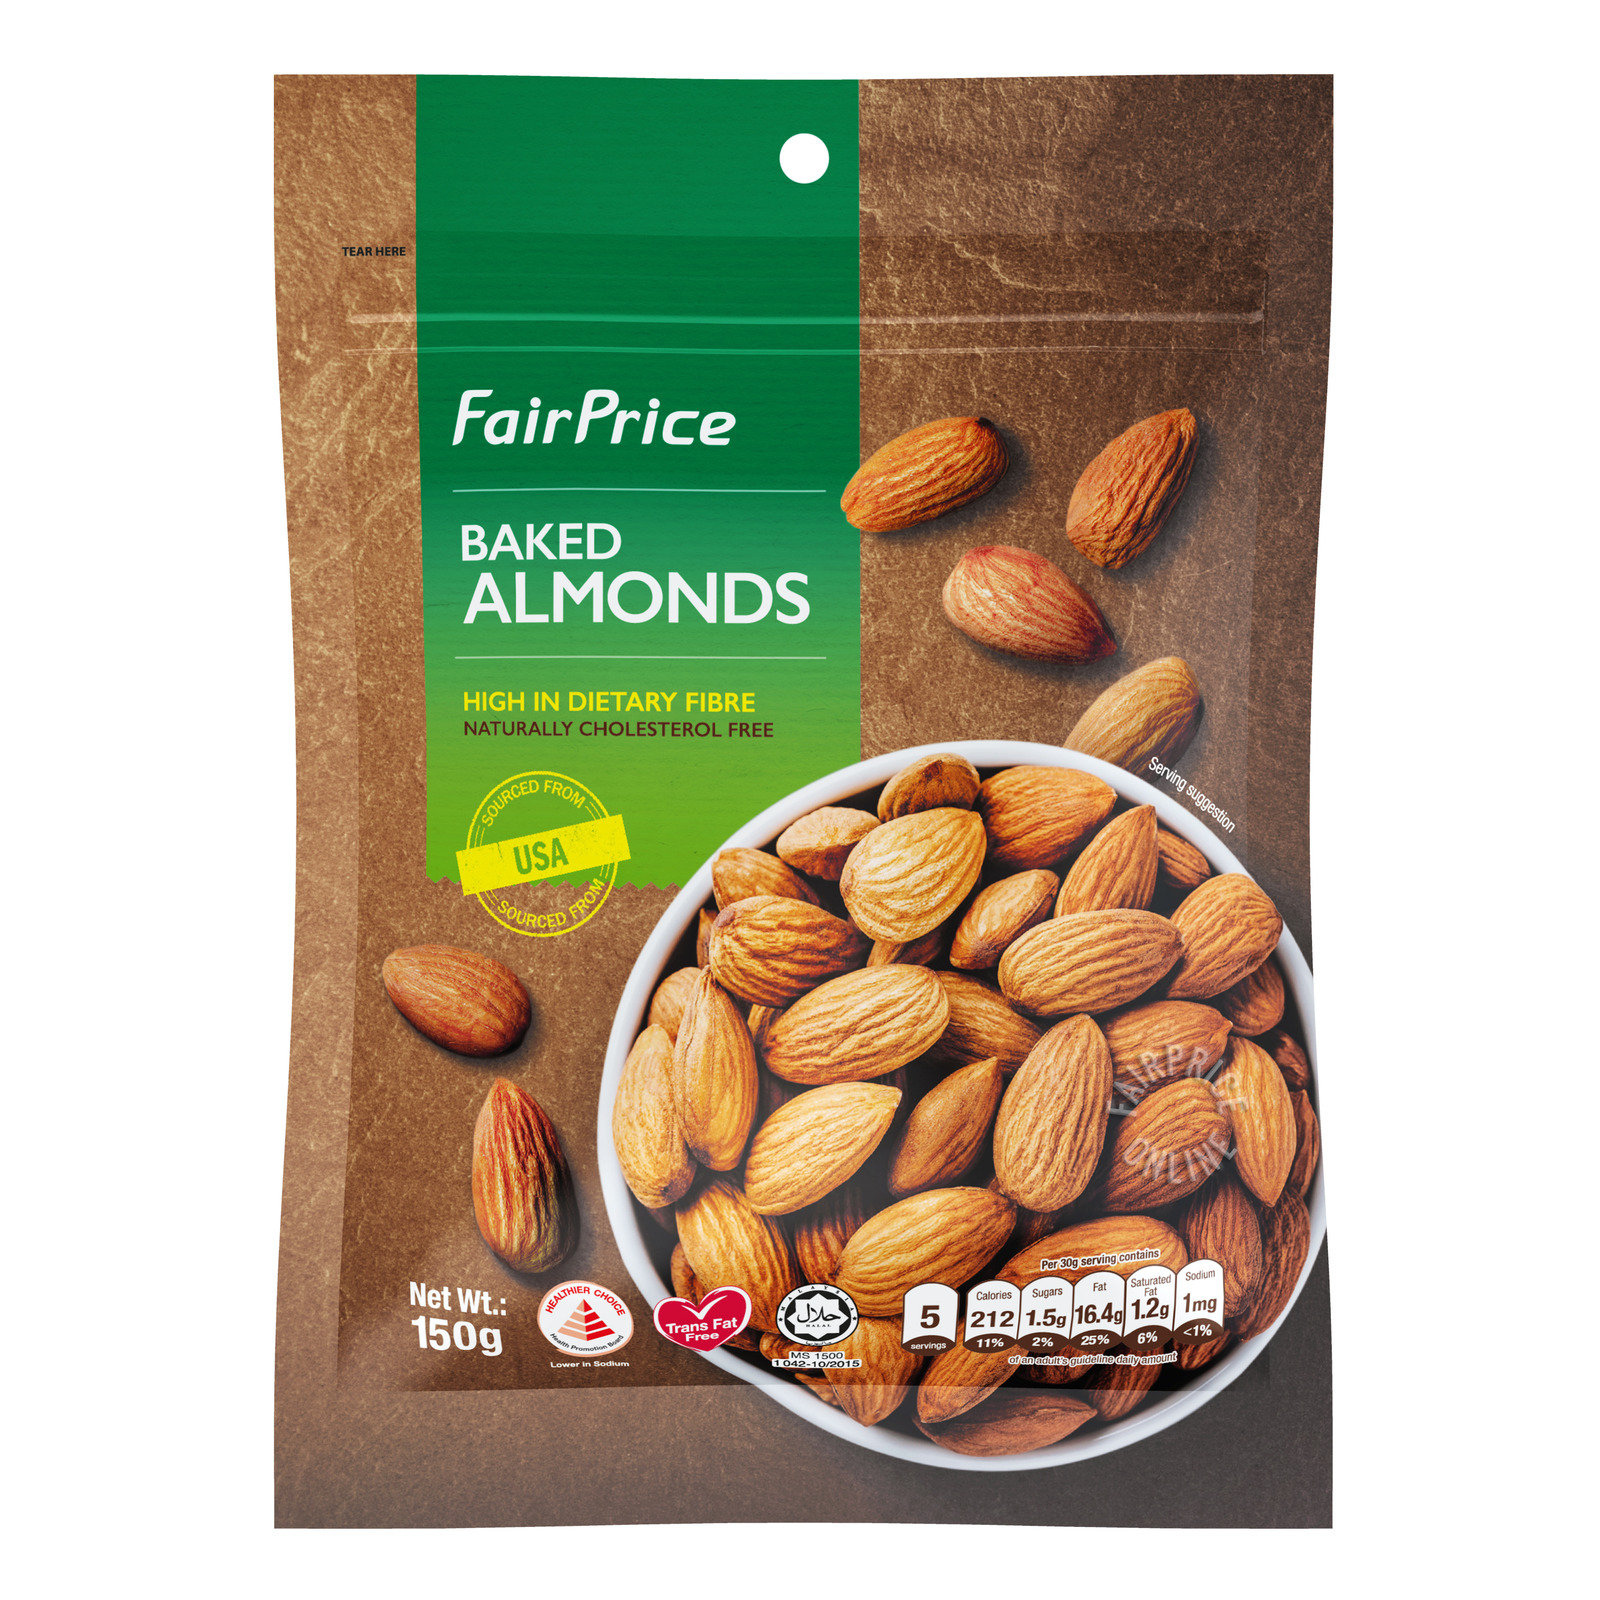 FairPrice Baked Almonds